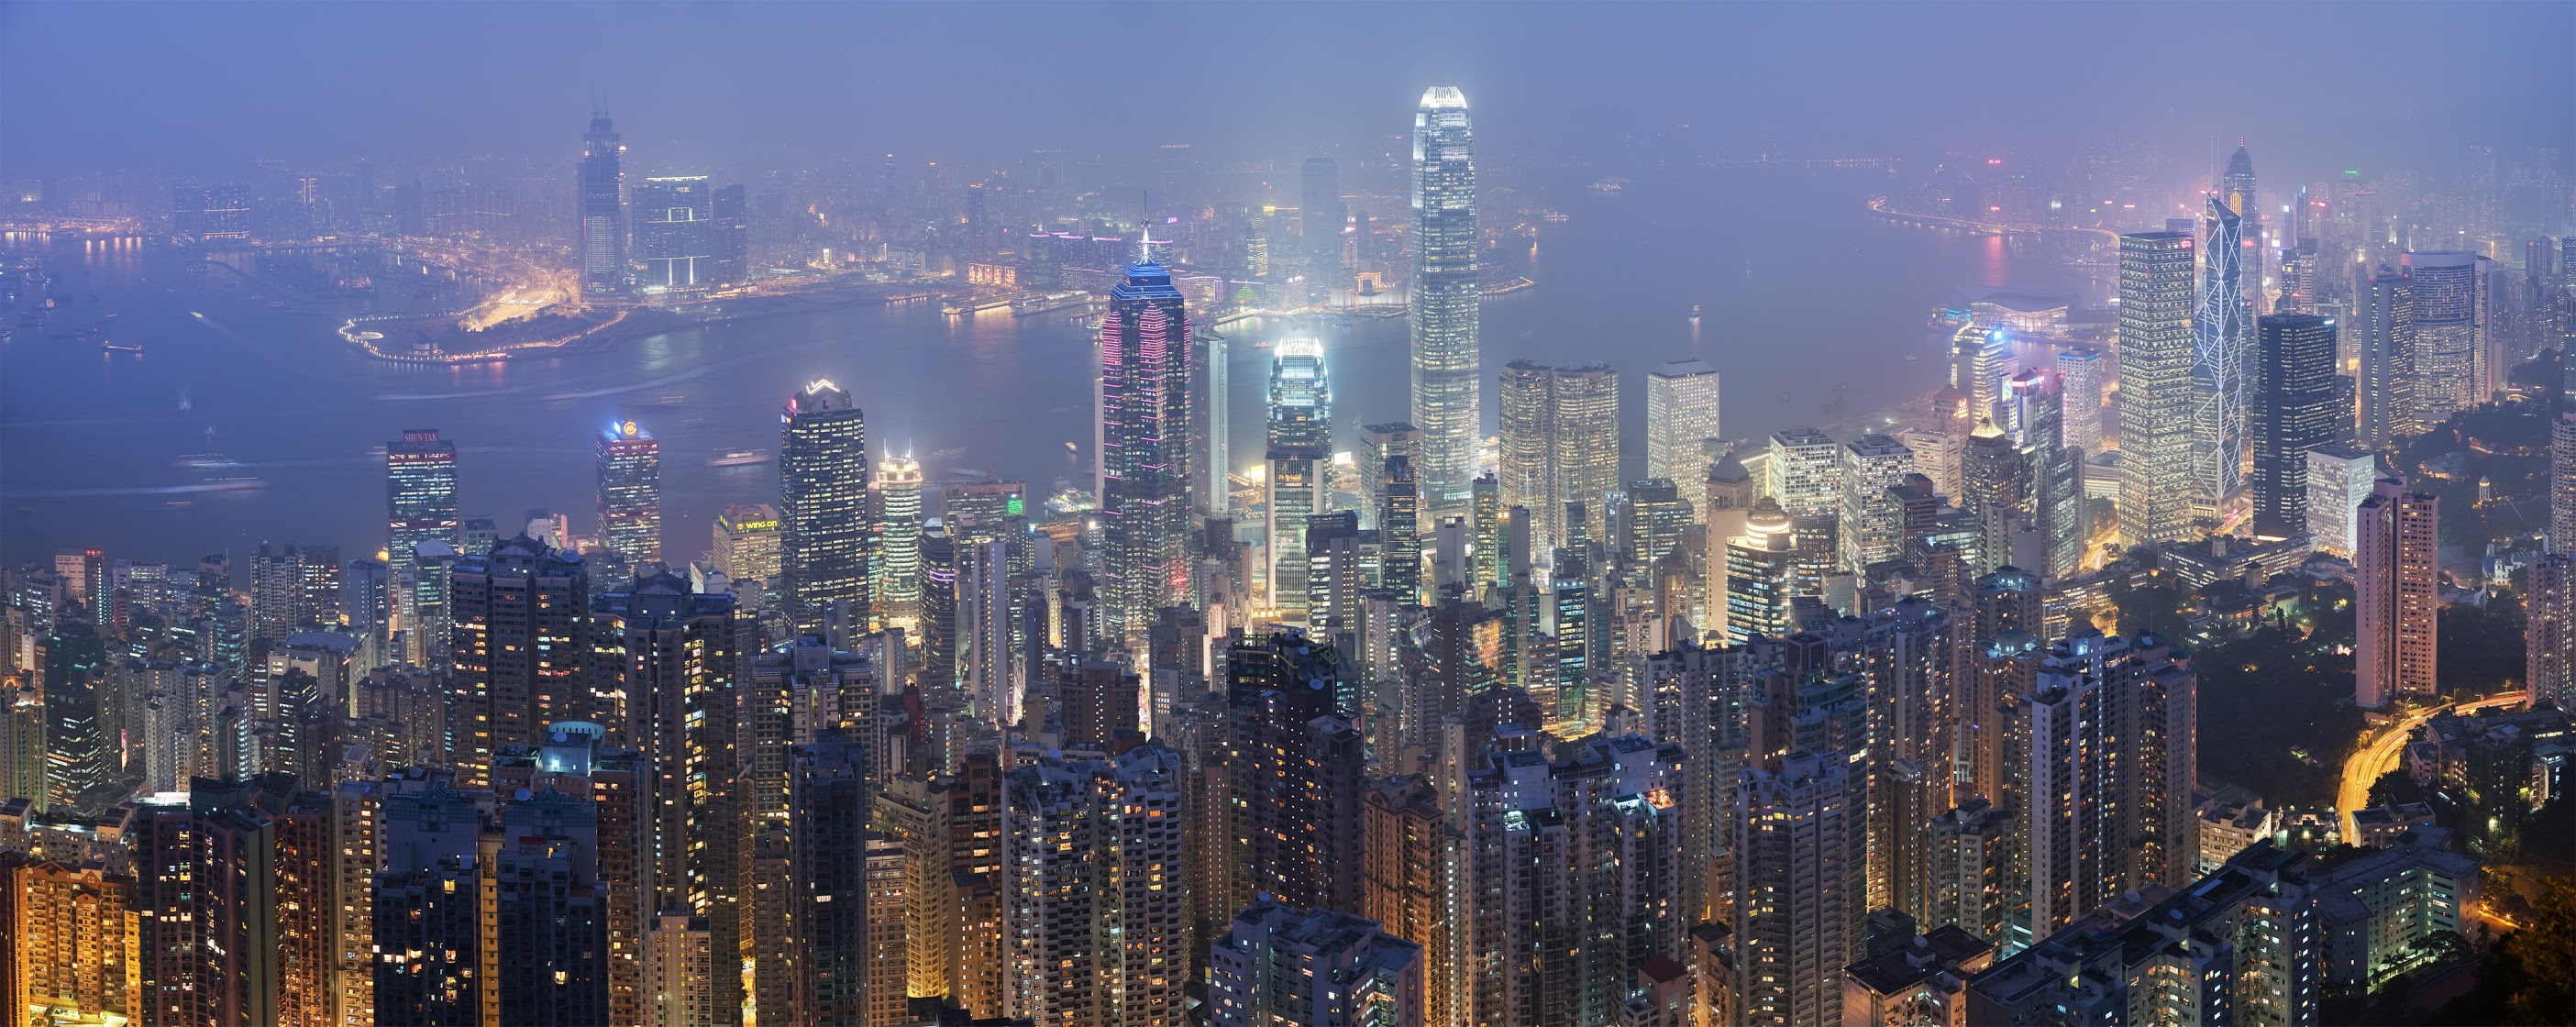 Hong_Kong_Skyline_-_Dec_20071